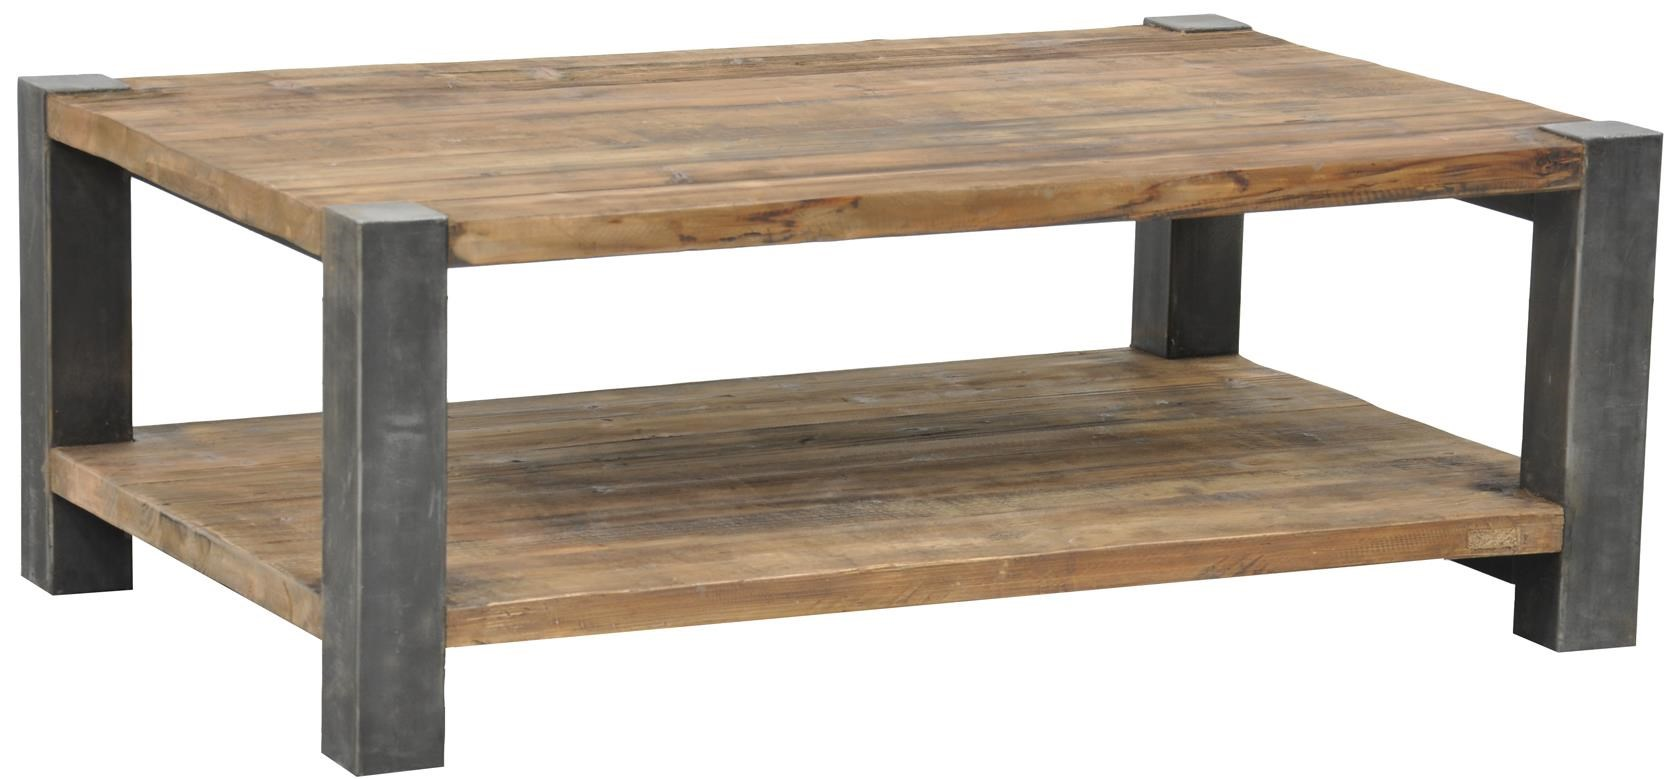 classic home furniture reclaimed wood. Jaden Reclaimed Coffee Table With Iron Base By Classic Home Furniture Wood L